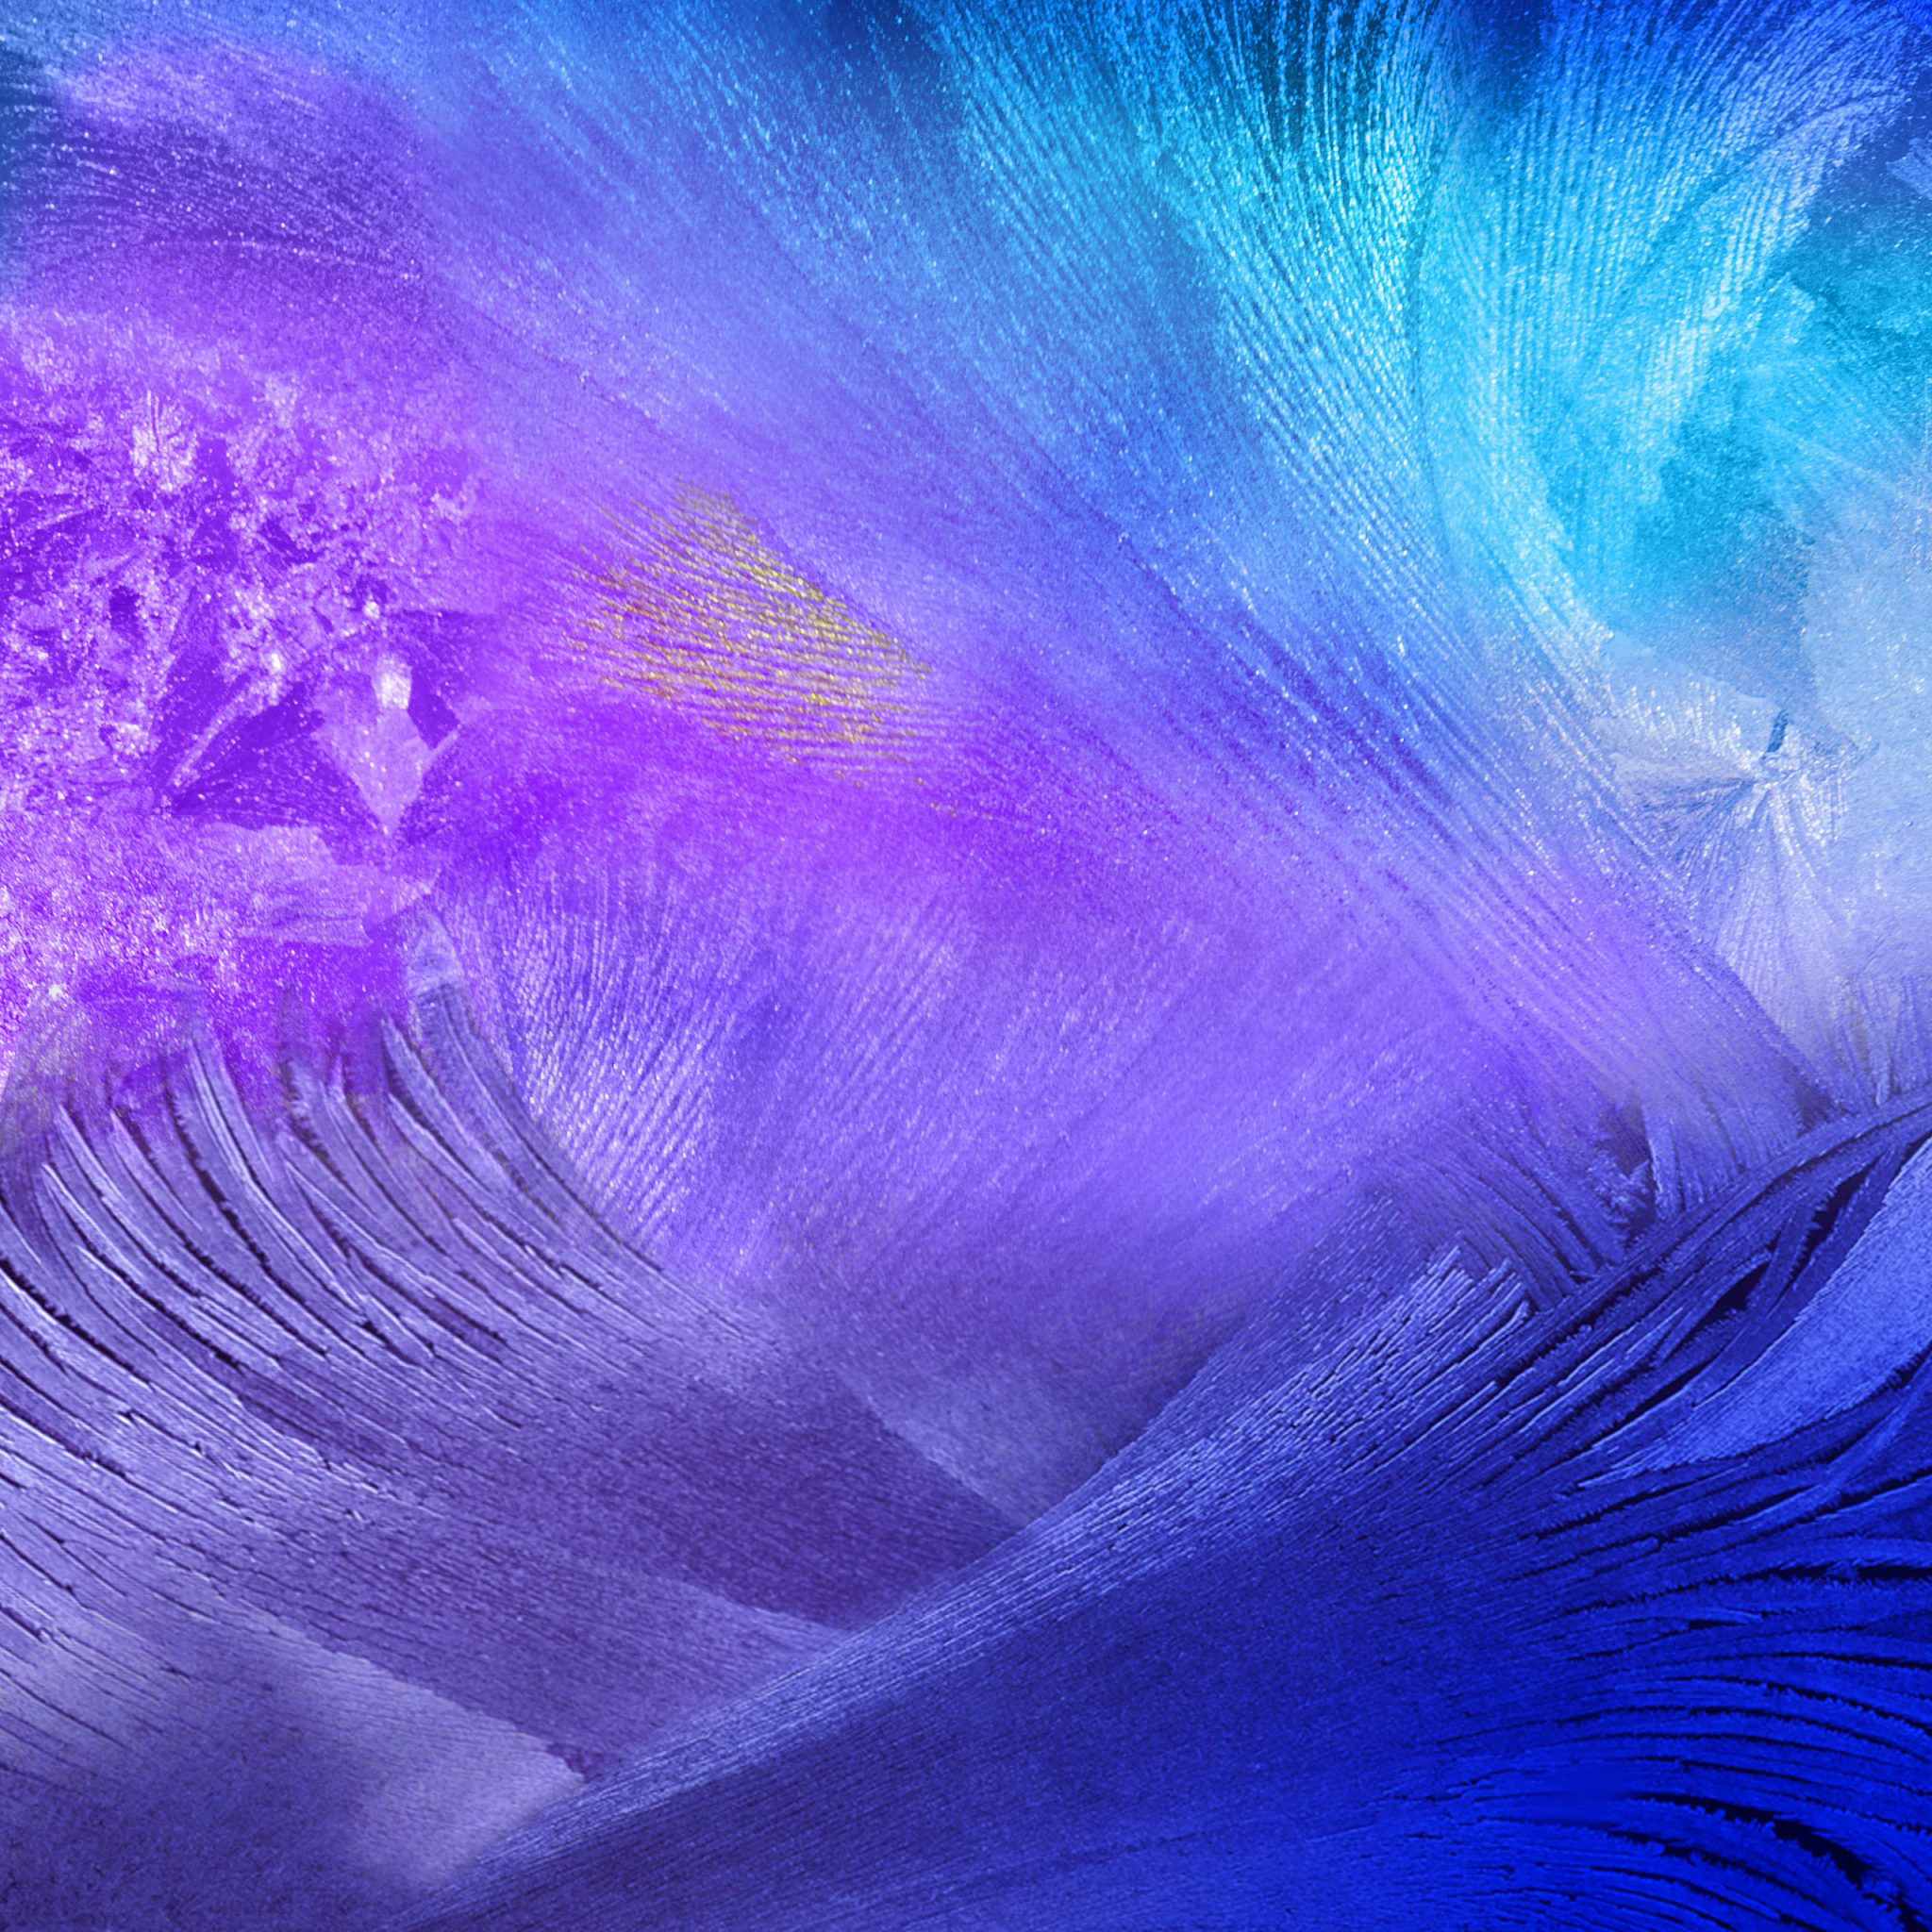 GalaxyNote4Wallpaper AndroDollar 11 - Galaxy Note 4 Lock Screen Wallpaper available for download